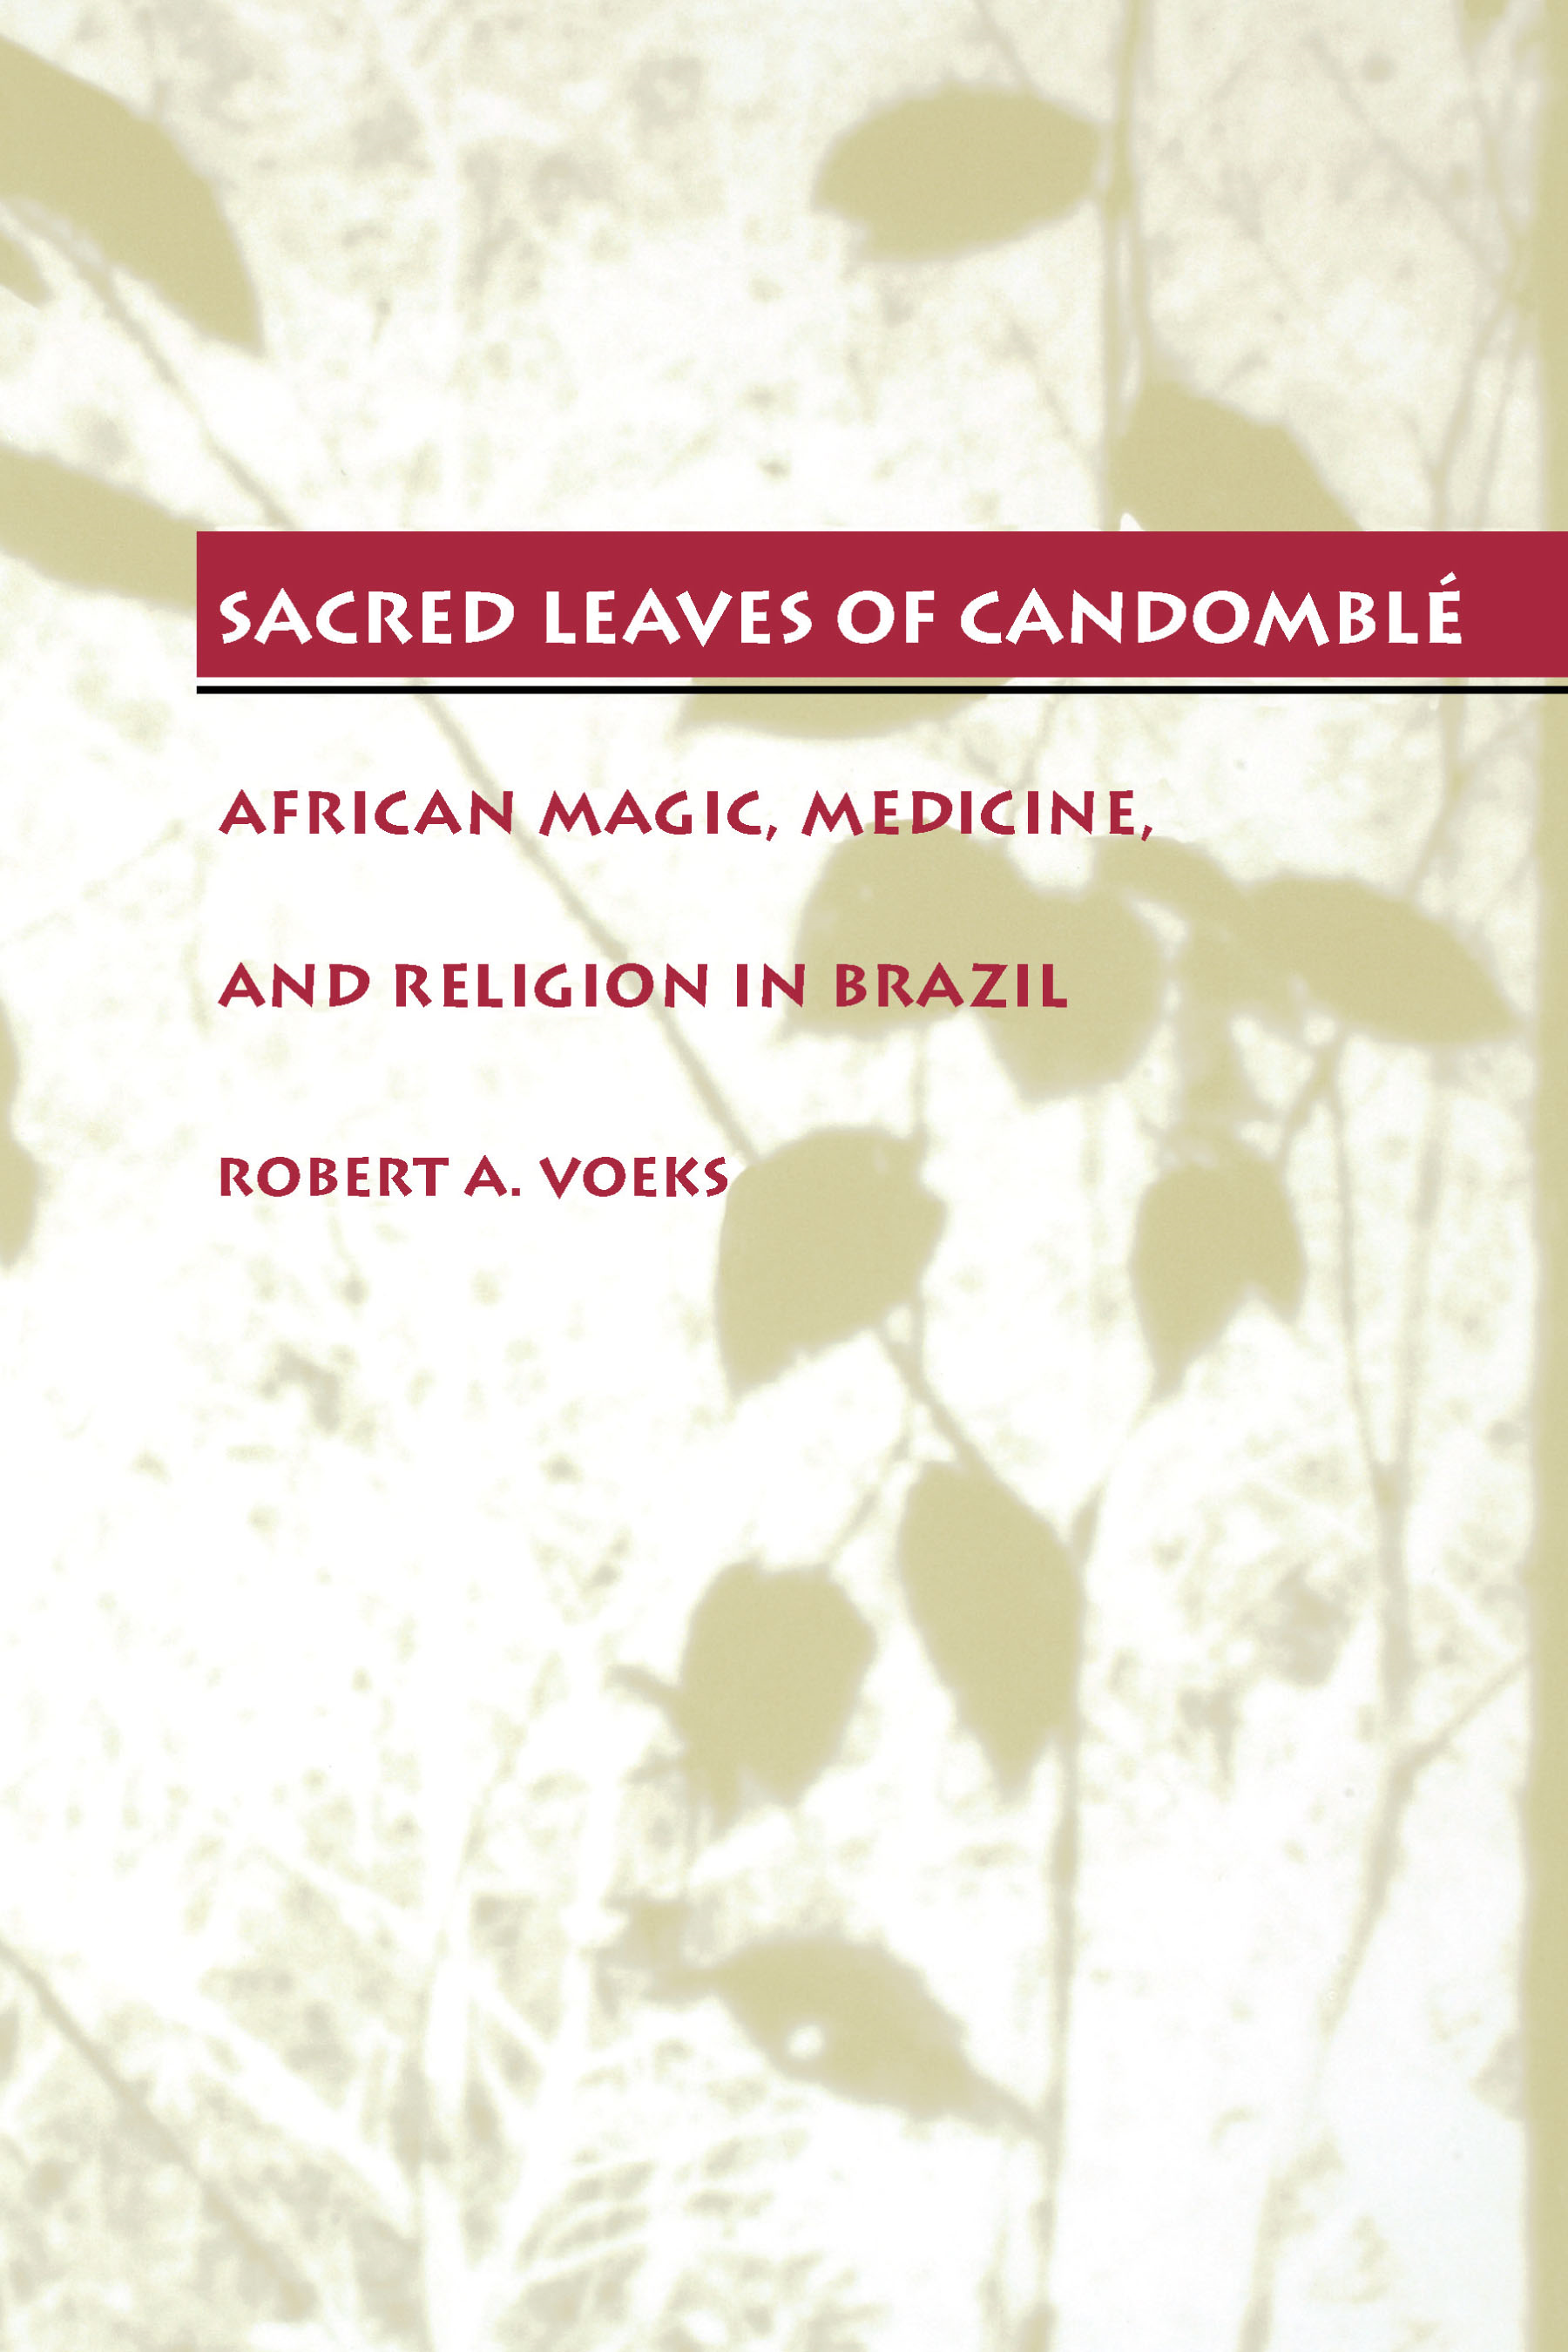 Sacred Leaves of Candomblé